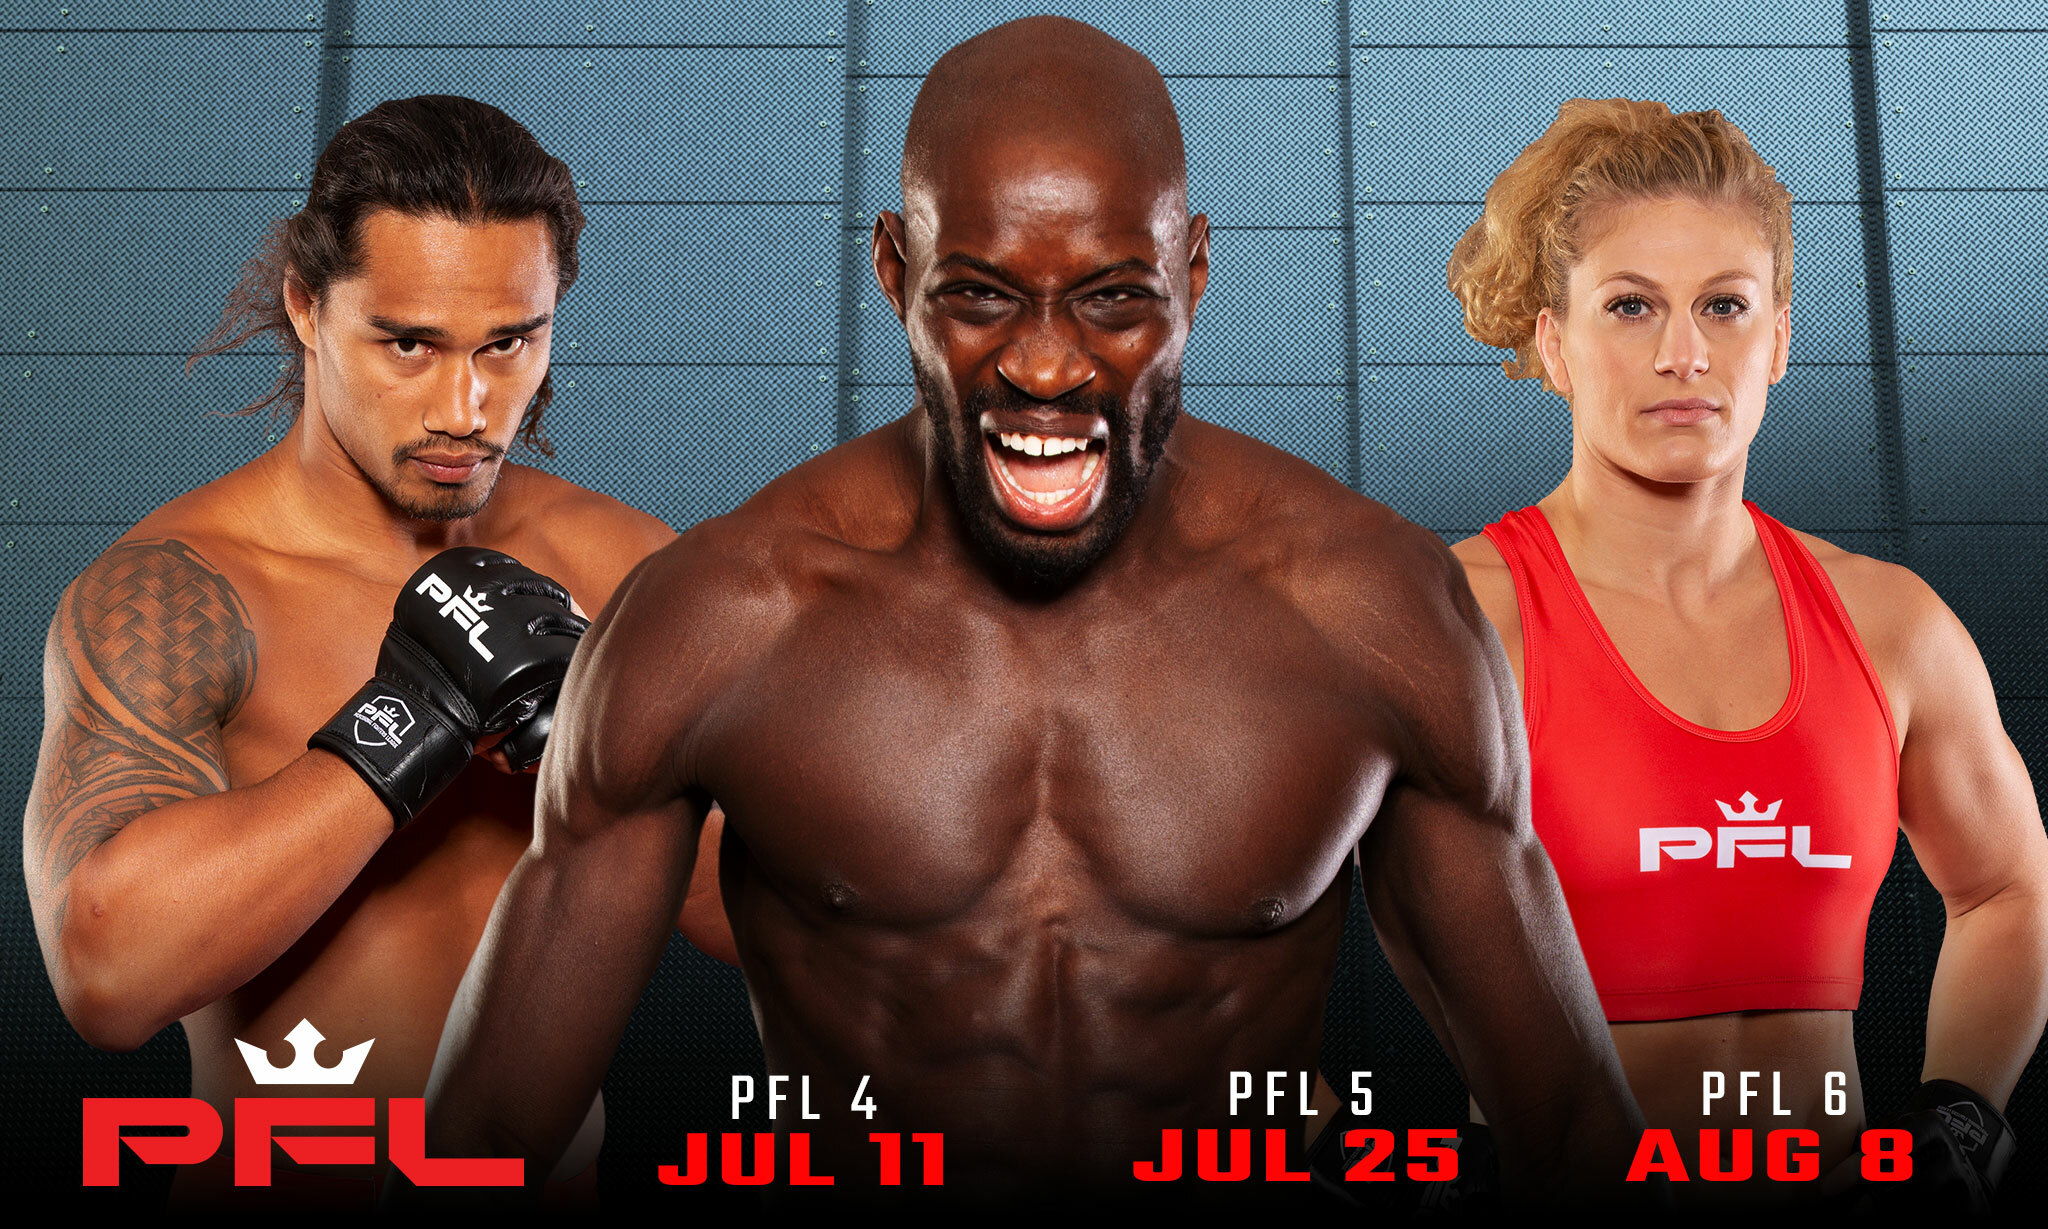 Professional Fighters League: MMA Action